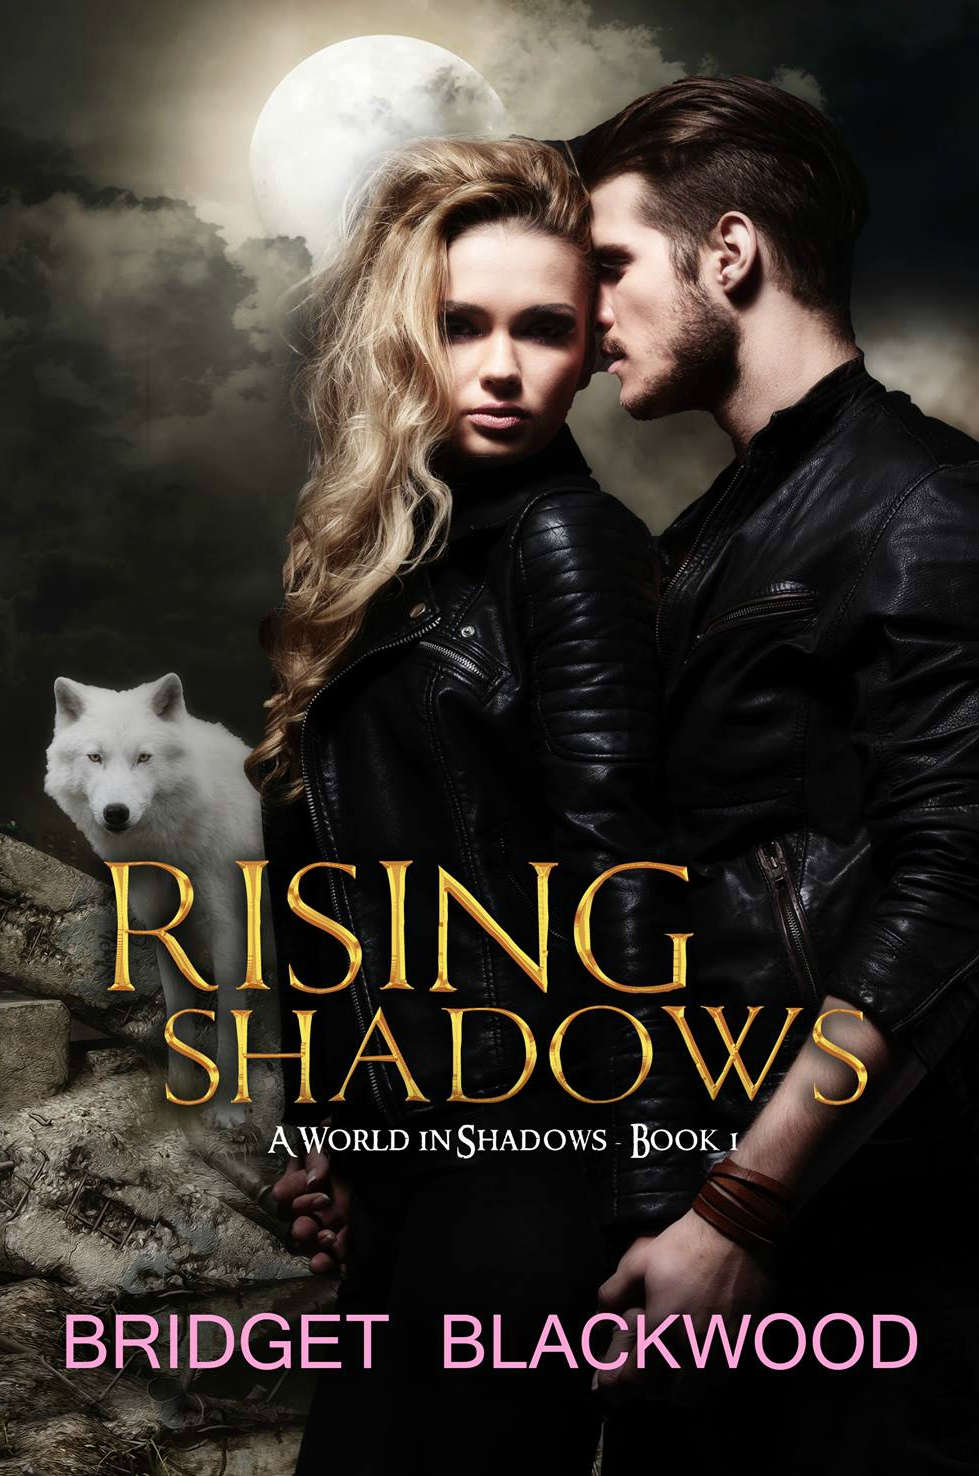 bridget blackwood_rising shadows_ebook.jpeg